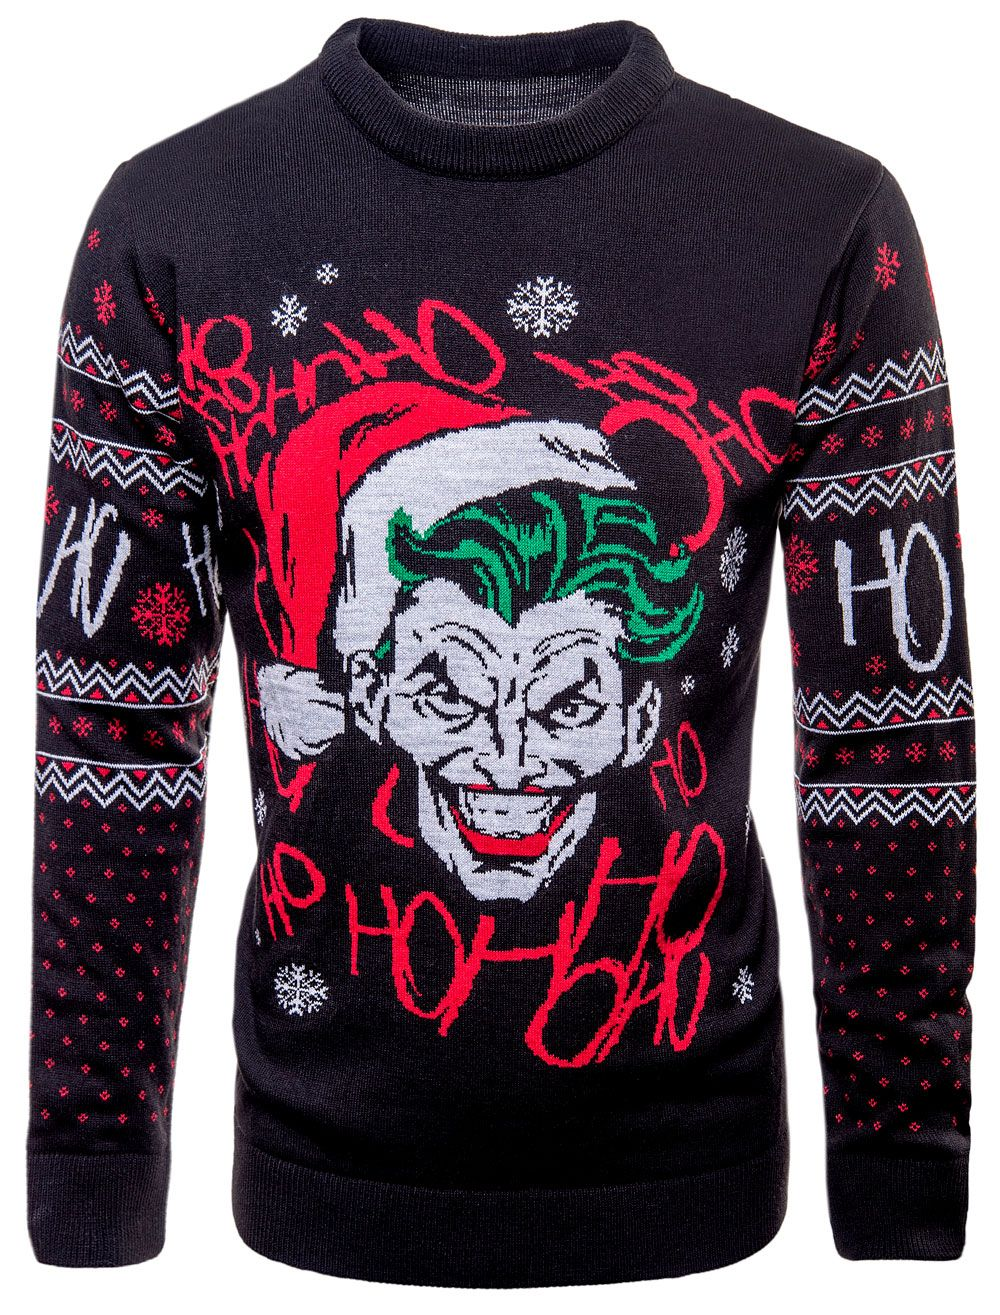 6091f775fb0 Batman  Jo Jo Jo-ker Christmas Knitted Jumper